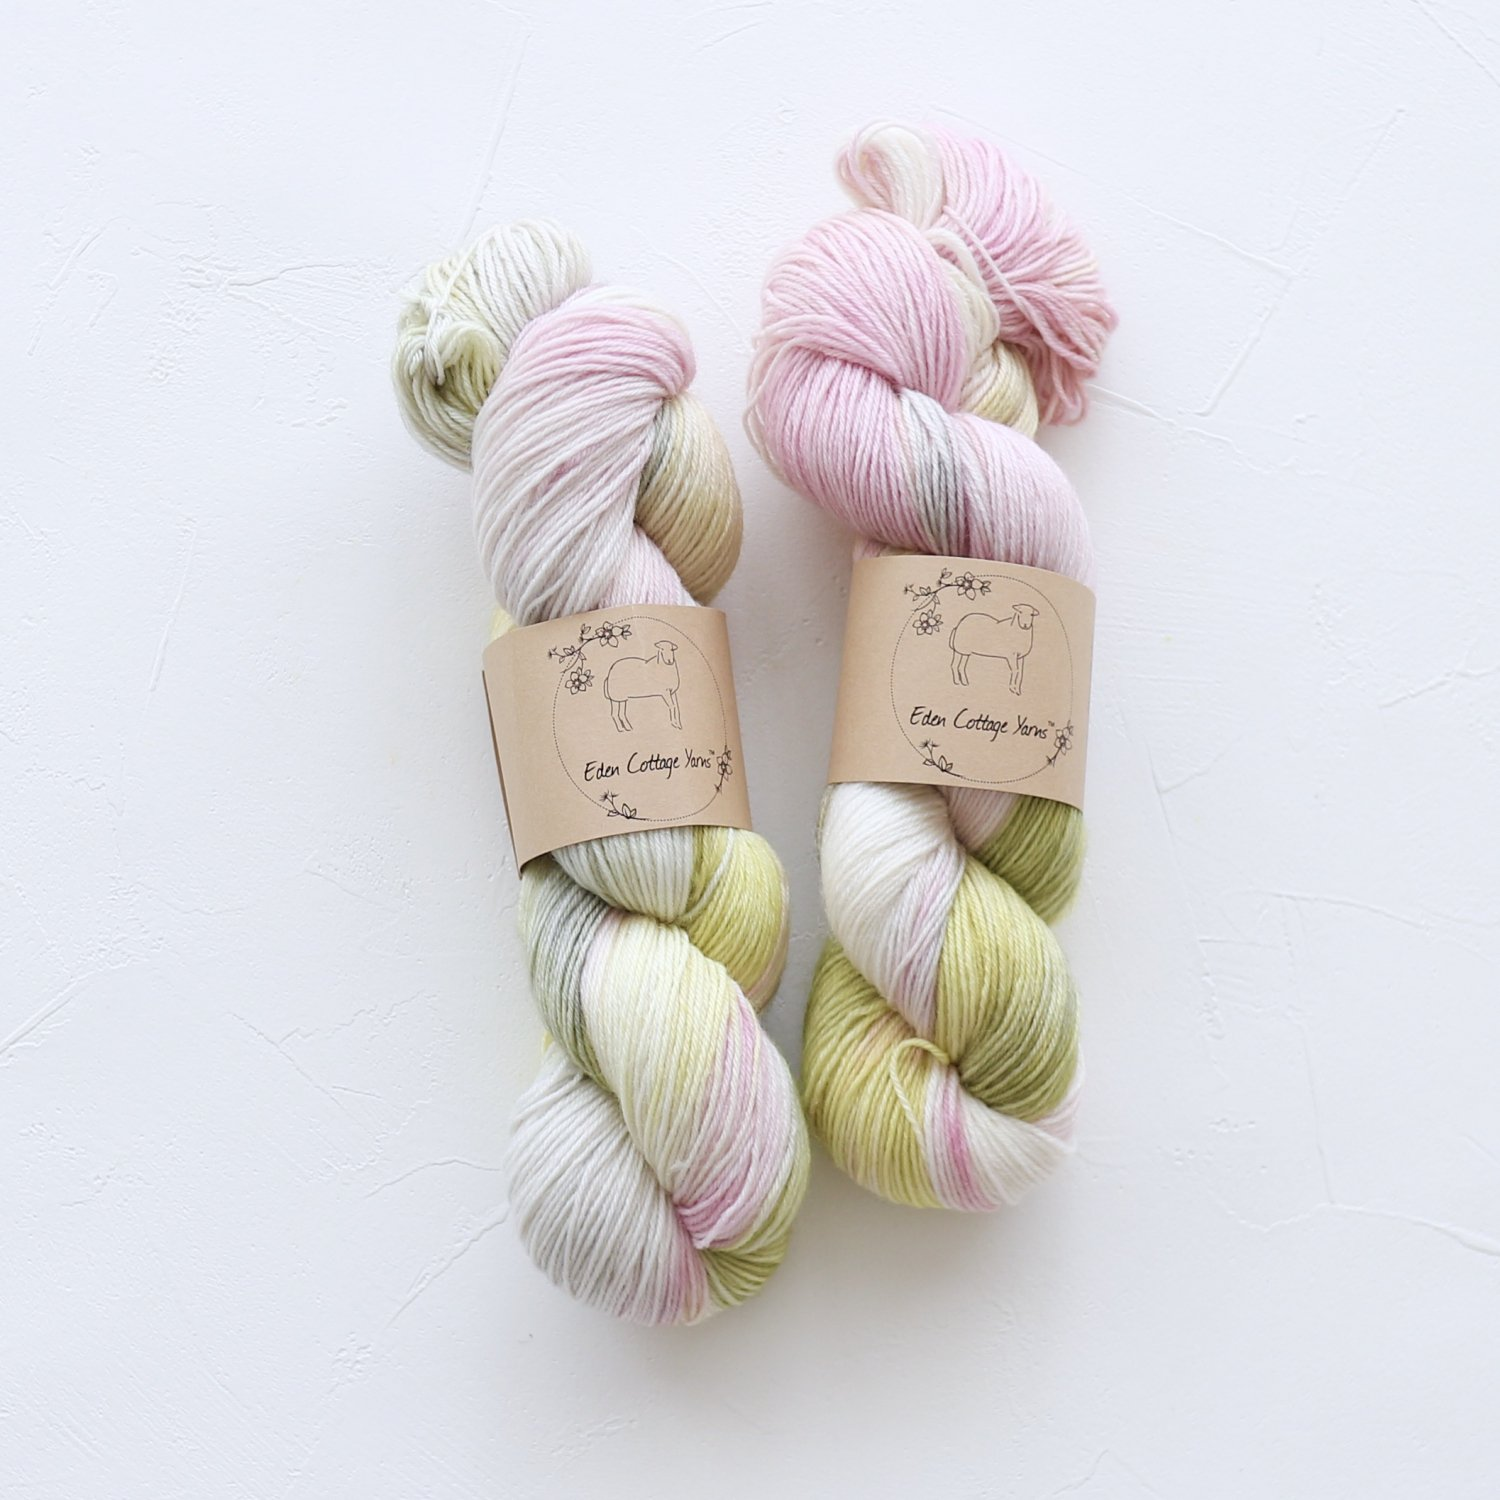 【Eden Cottage Yarns】<br>Tempo 4ply<br>Cosmos Flowerbed